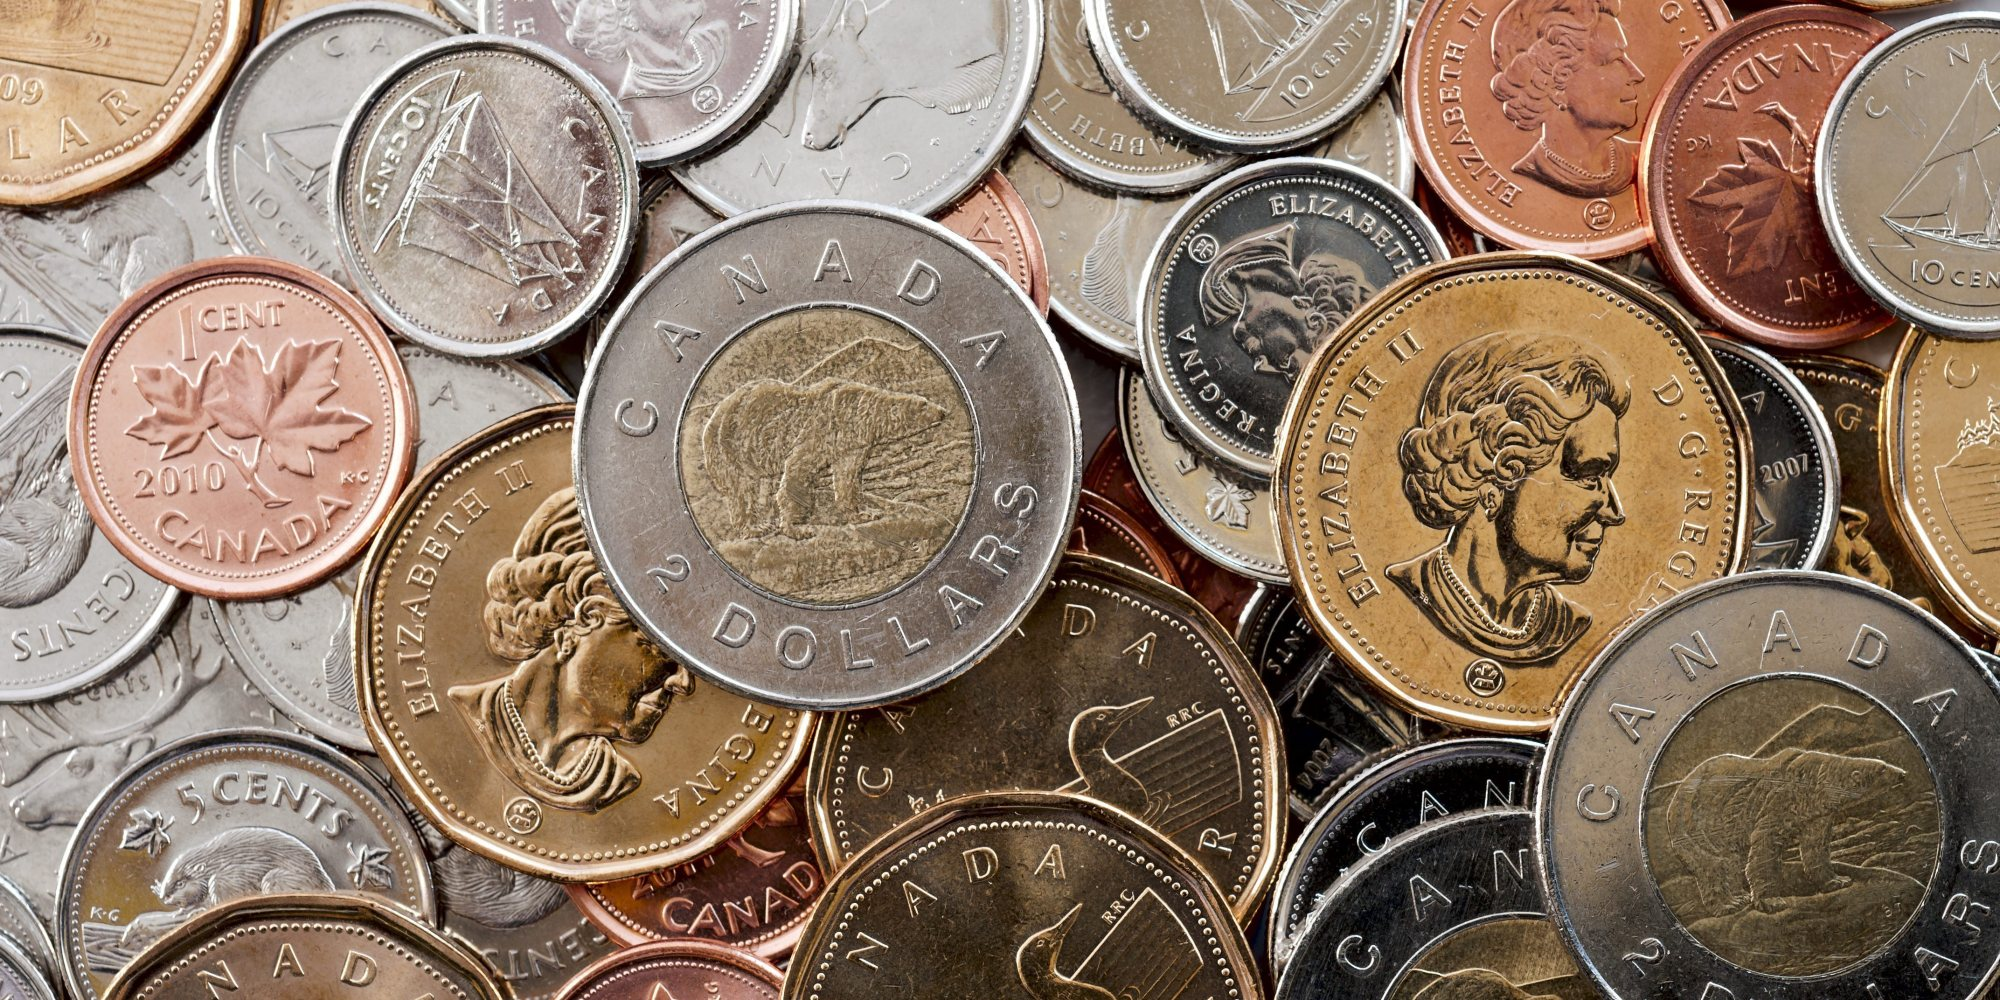 Worksheet Toonies And Loonies first nations economy worth 1 billion in atlantic canada study